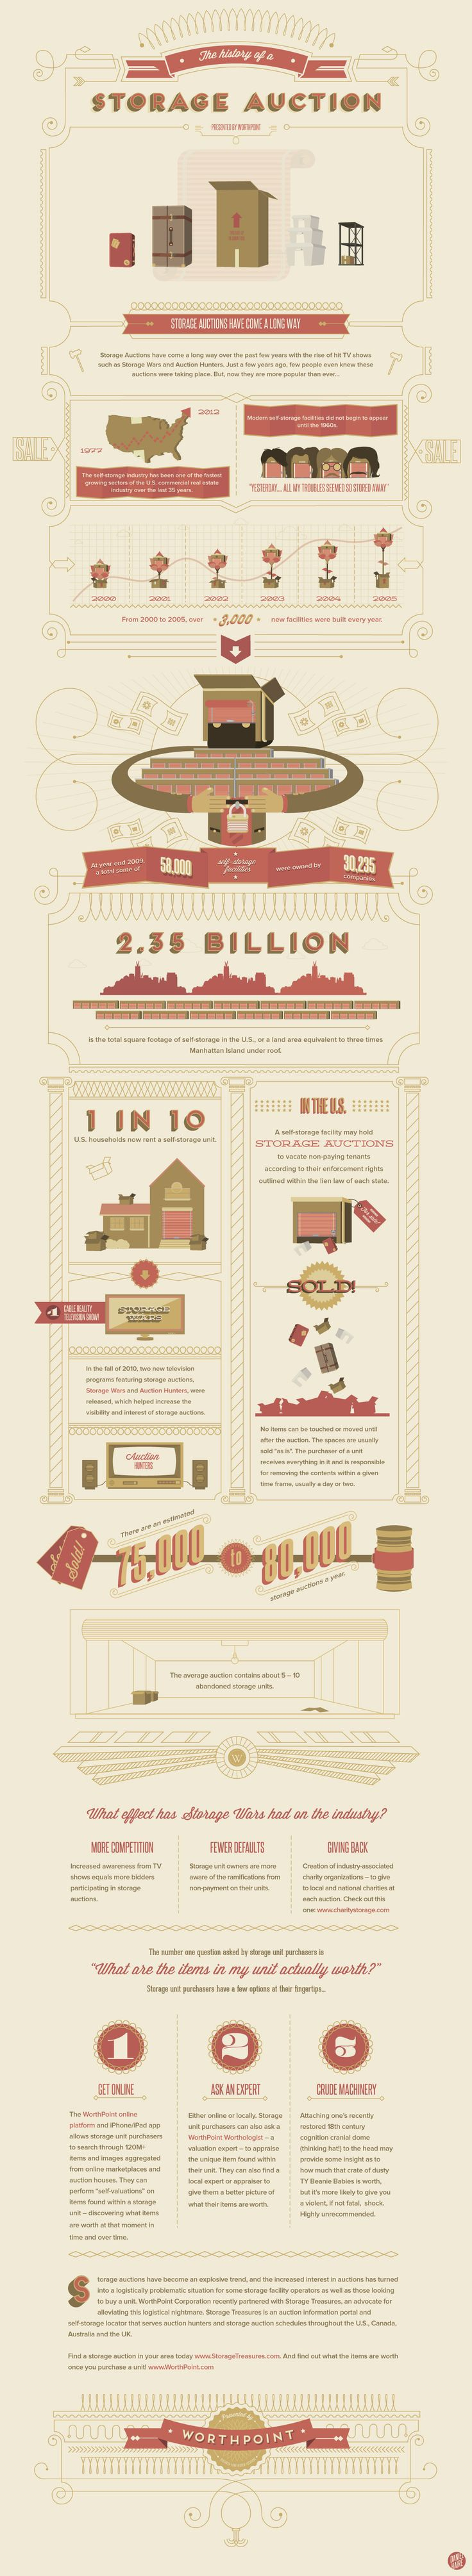 This infographic follows the history of storage auctions and how they have fueled the production of popular television shows such as Storage Wars and